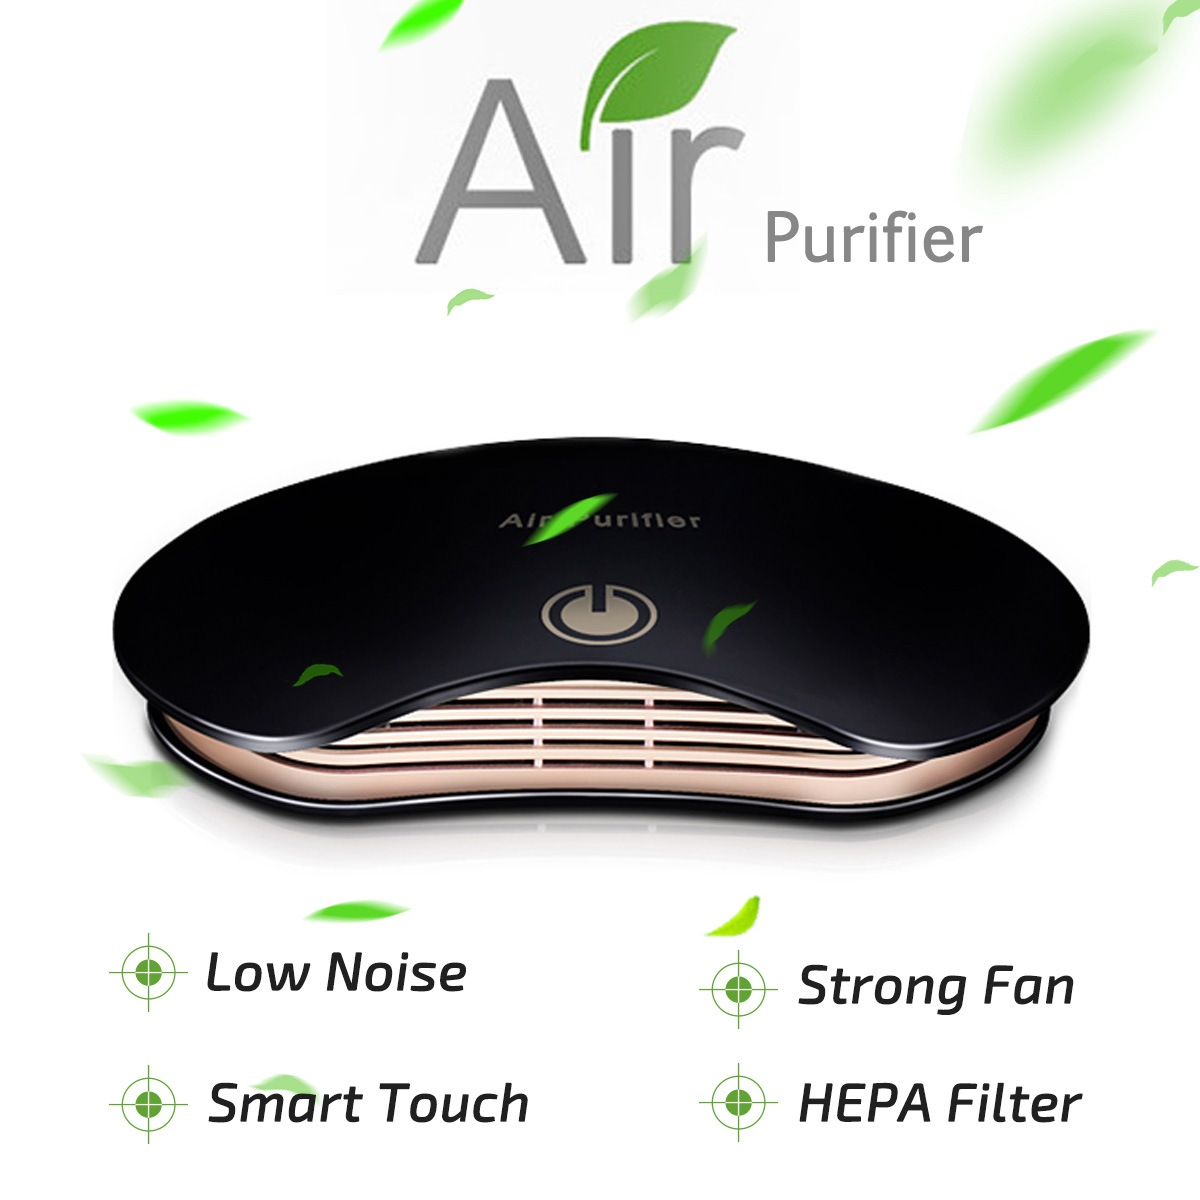 images/new-electronics/A104792861382212387PB/formaldehyde-smell-removal-car-air-purifier-anion-ionizer-household-sterilize-auto-air-freshener-black-plusbuyer.jpg